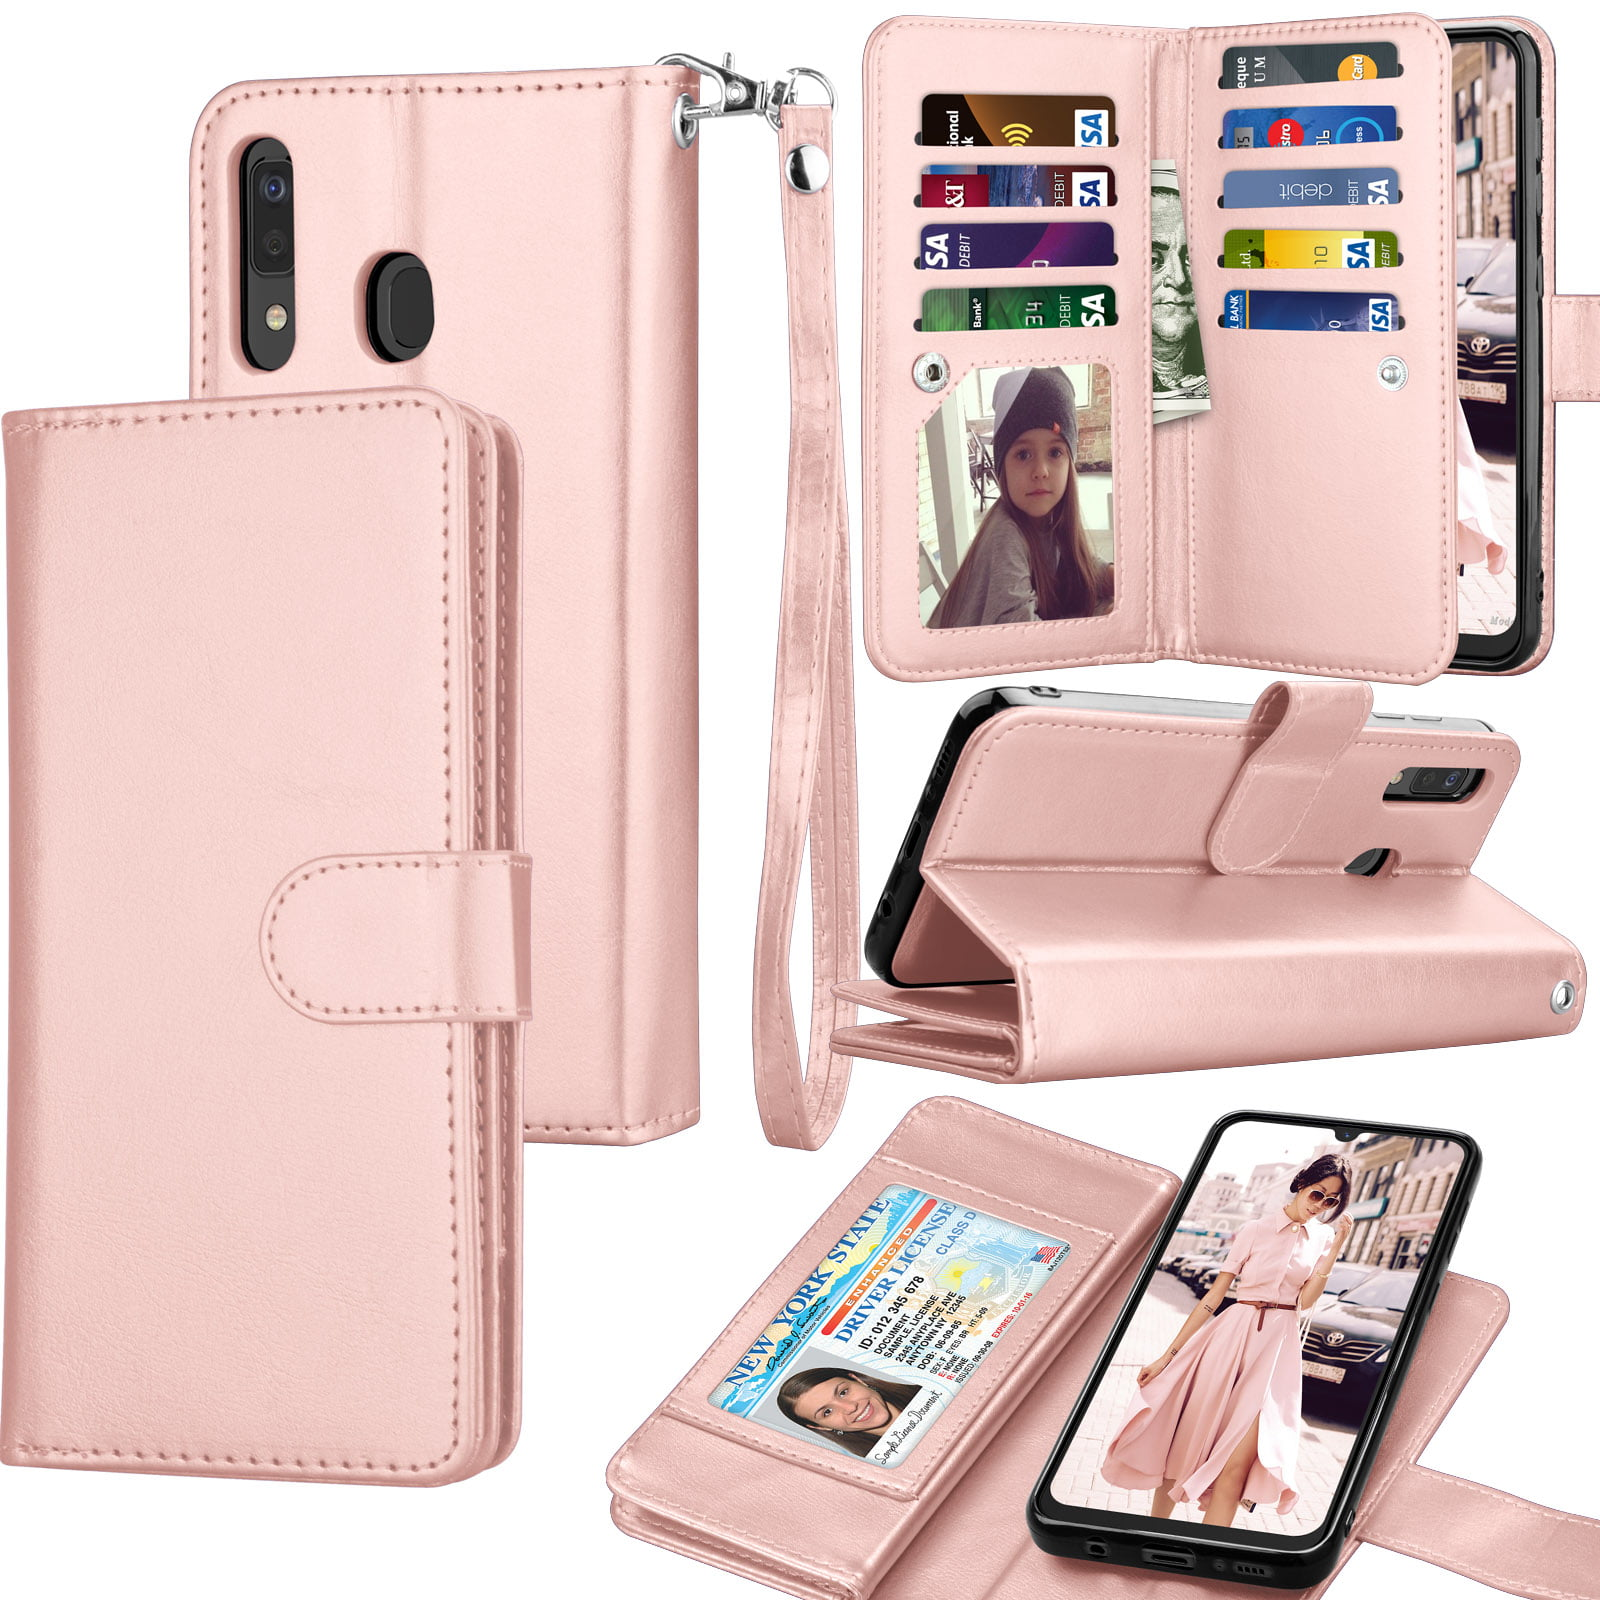 Samsung Galaxy A50 Flip Case Cover for Samsung Galaxy A50 Leather Extra-Protective Business Kickstand Cell Phone case Card Holders with Free Waterproof-Bag Business